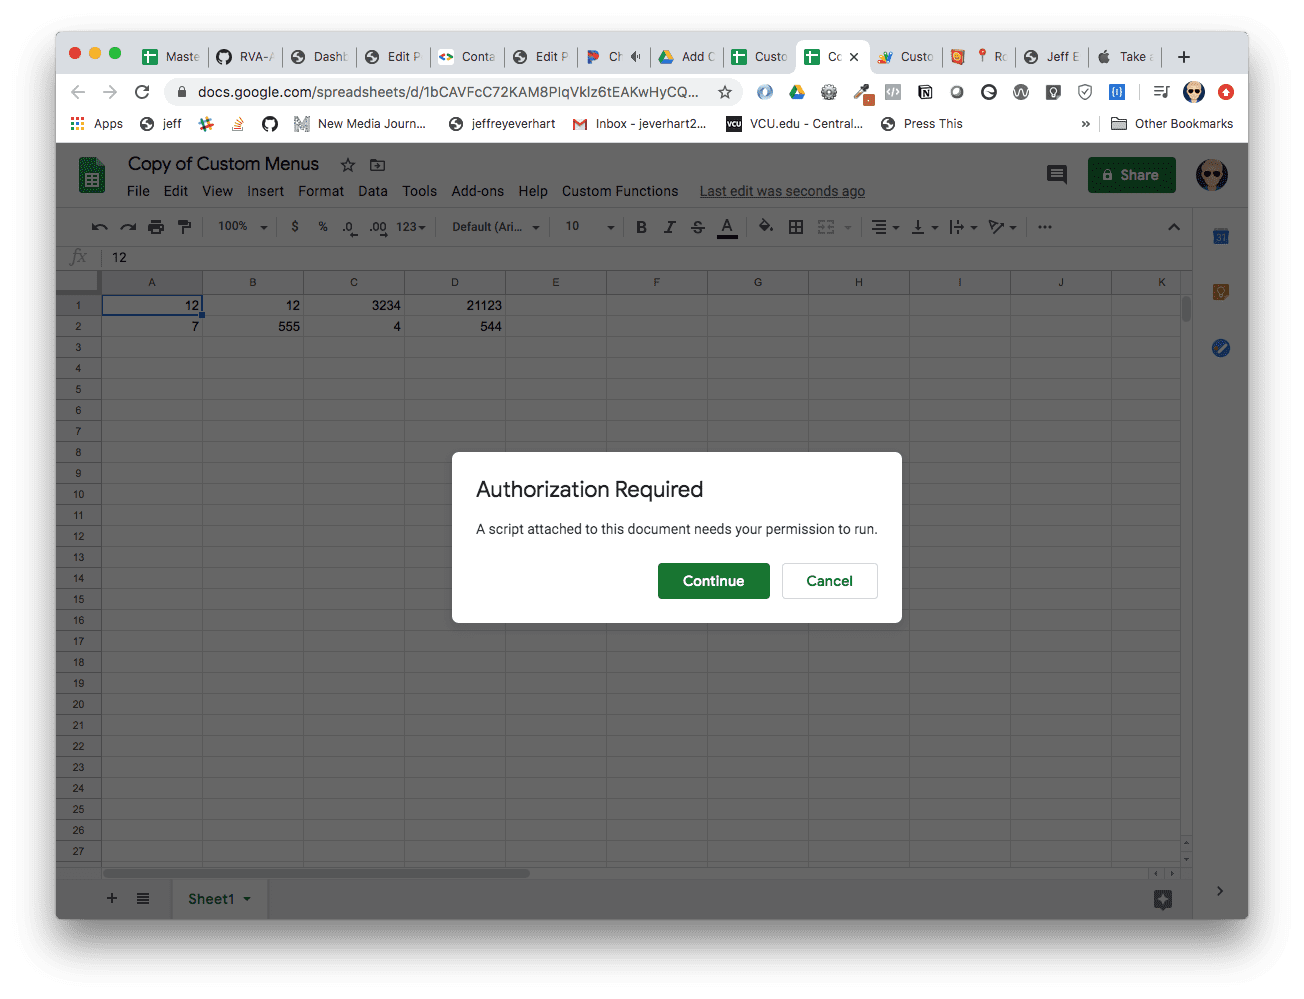 an image of a request for authorization from Google Apps Script